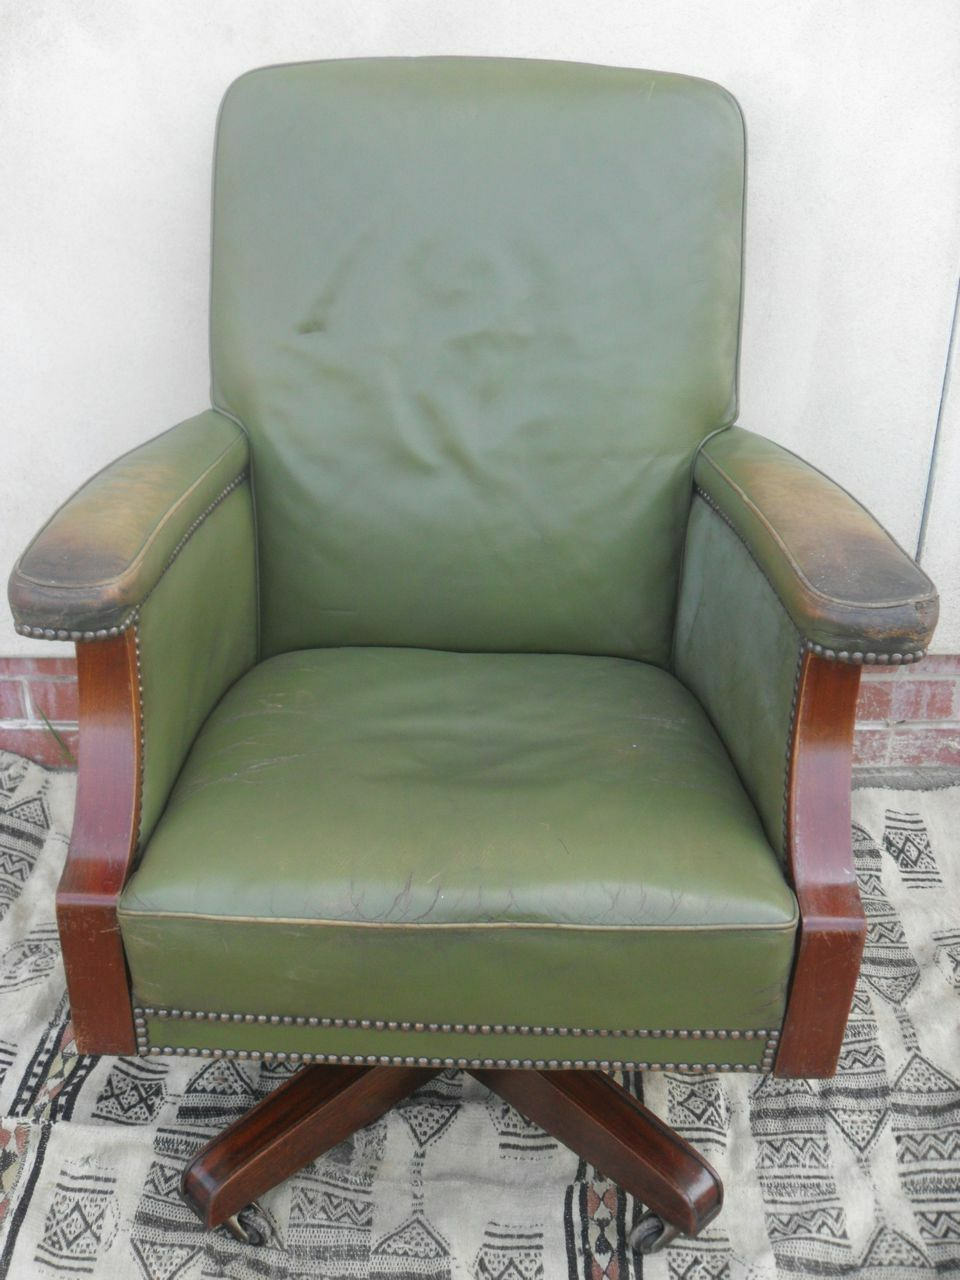 Green Leather Upholstered and Studded Swivel Desk Chair